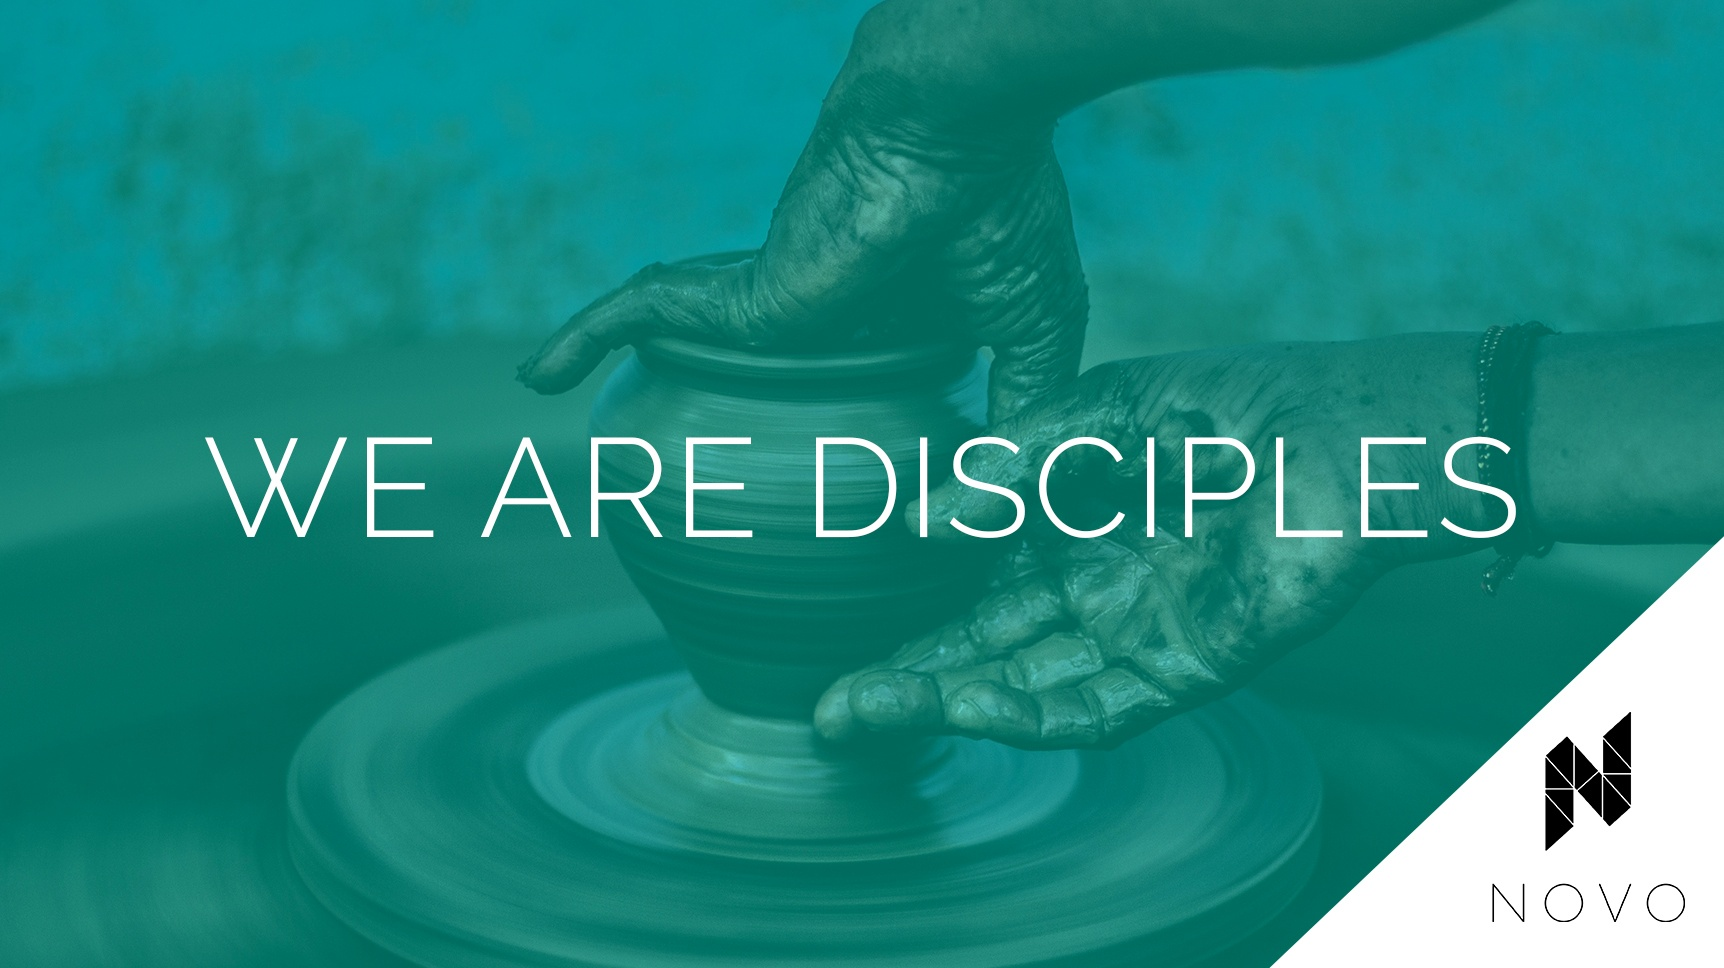 Who We Are - Disciples.jpg